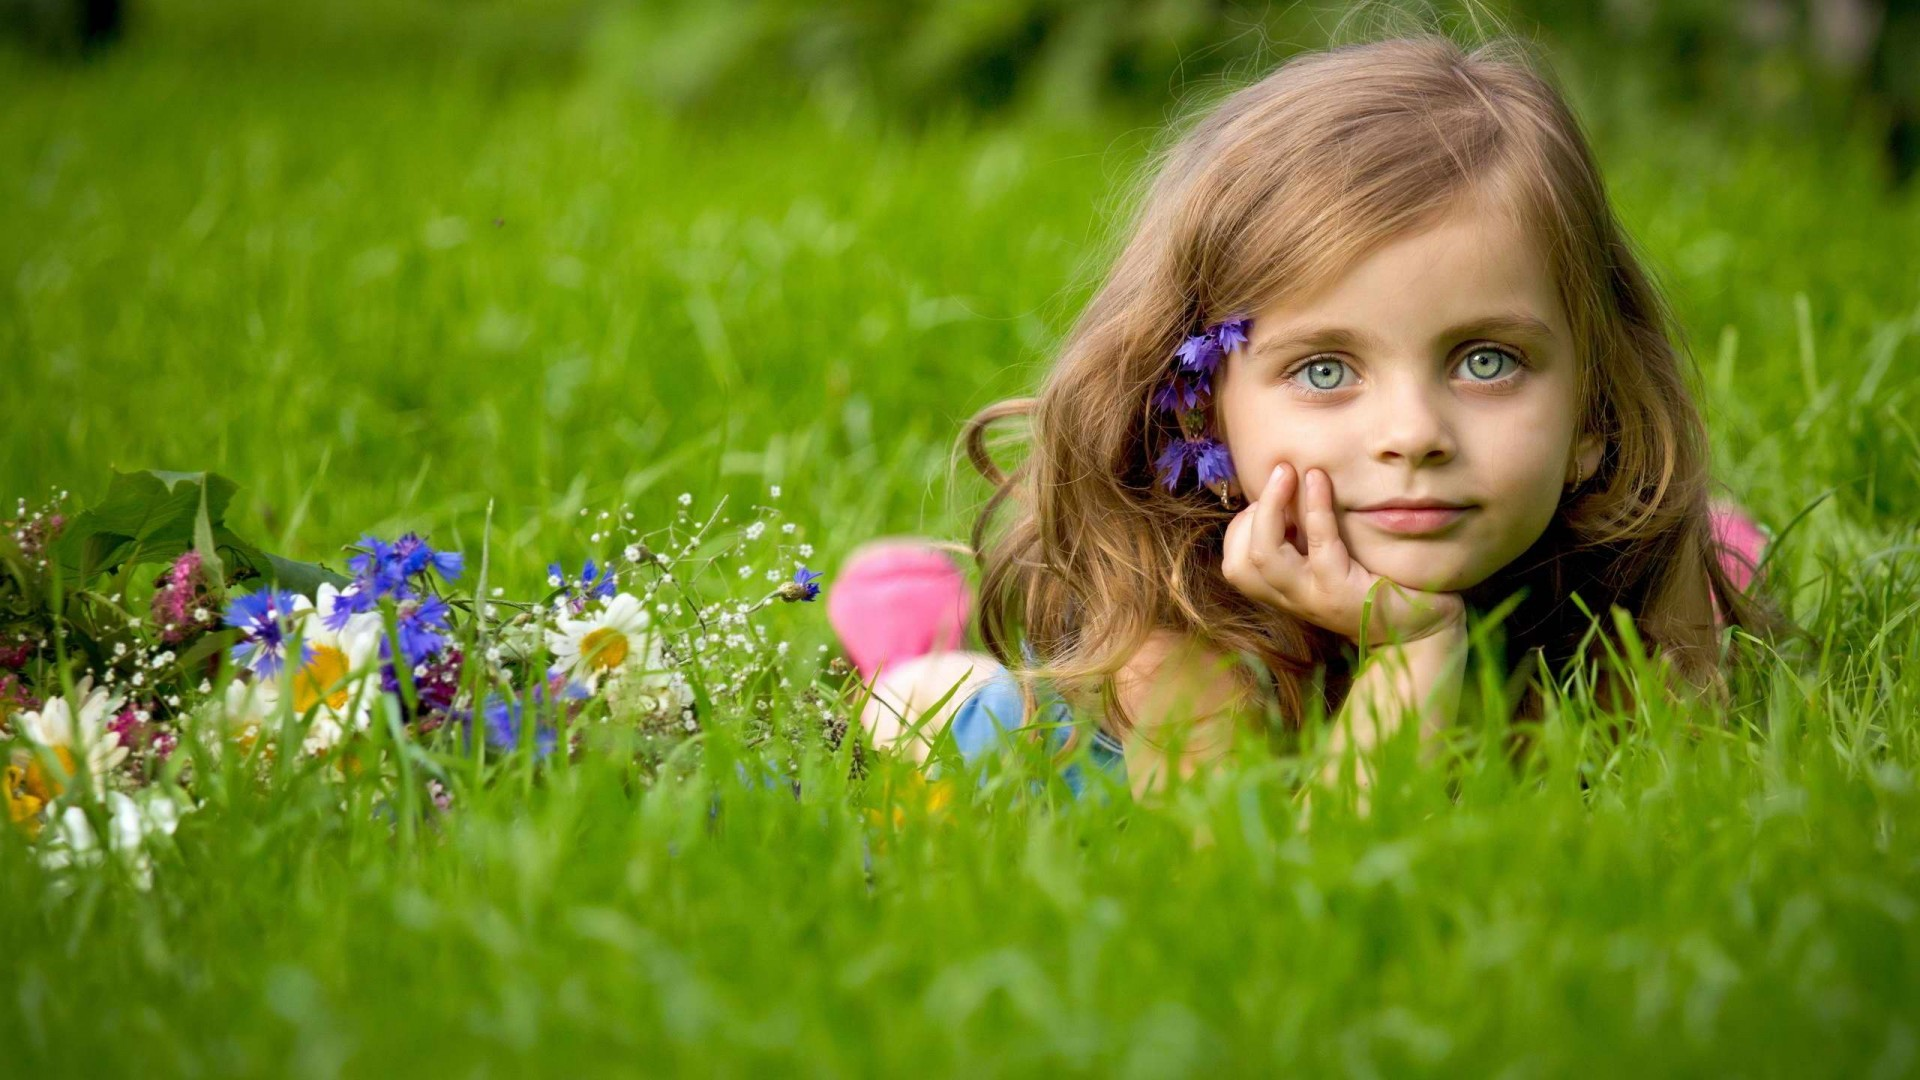 1920x1080 Baby Girl Cute Pictures - Wallpapers PC Free Download